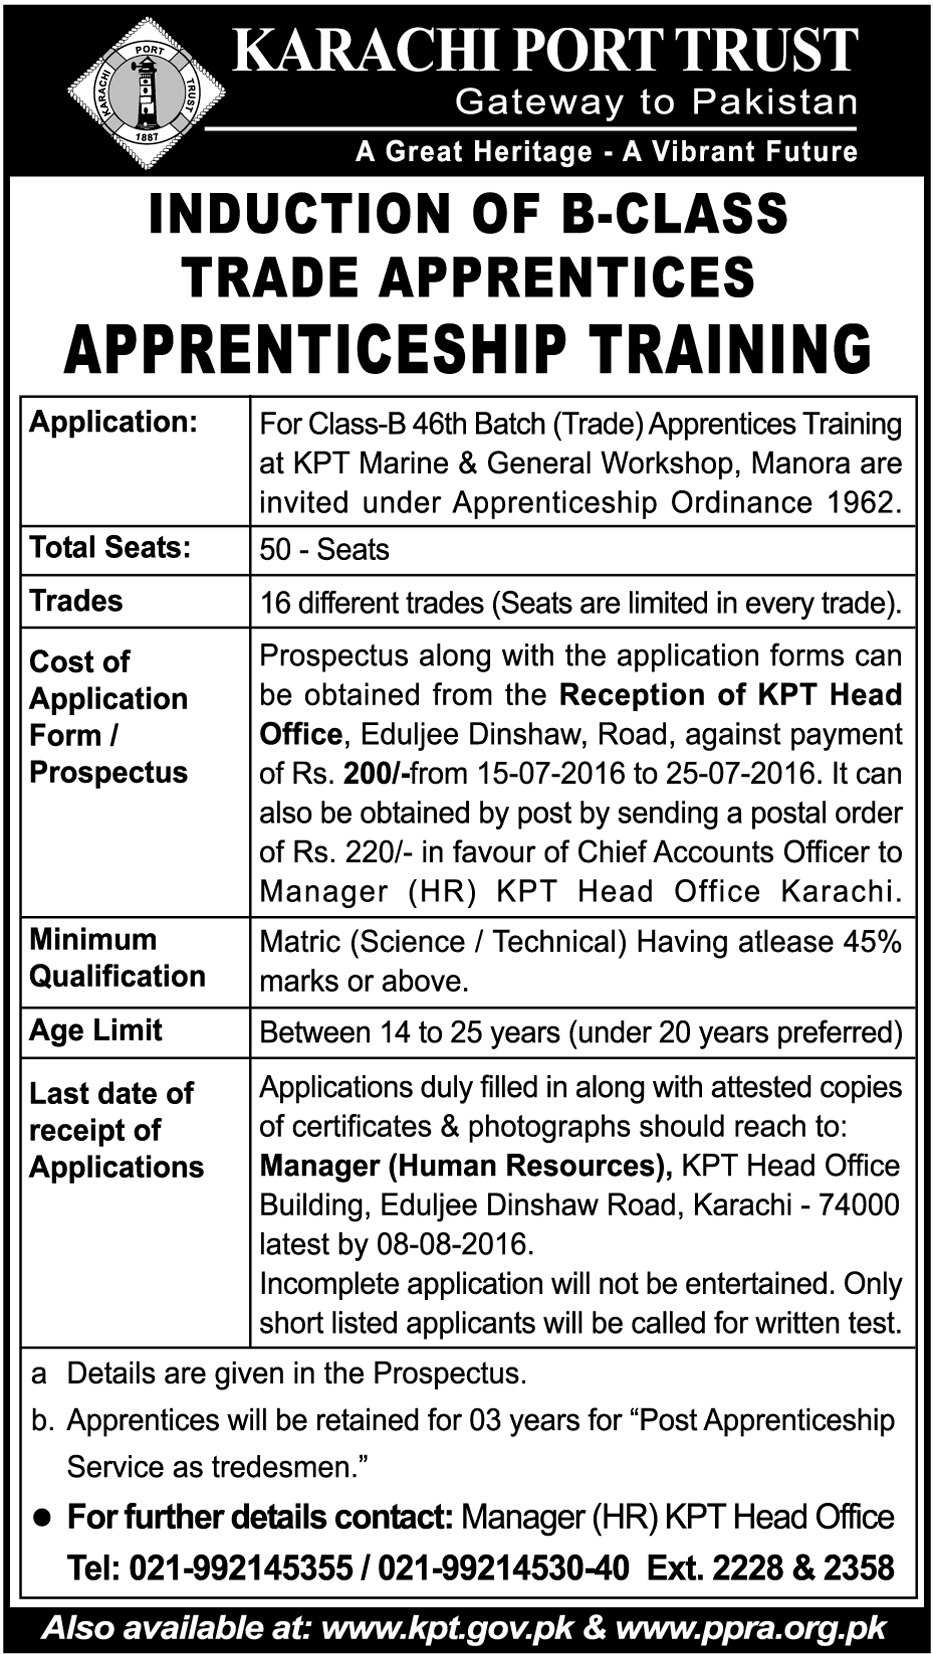 Karachi Port Trust Apprenticeship 2016 Application Form, Eligibility, Last Date